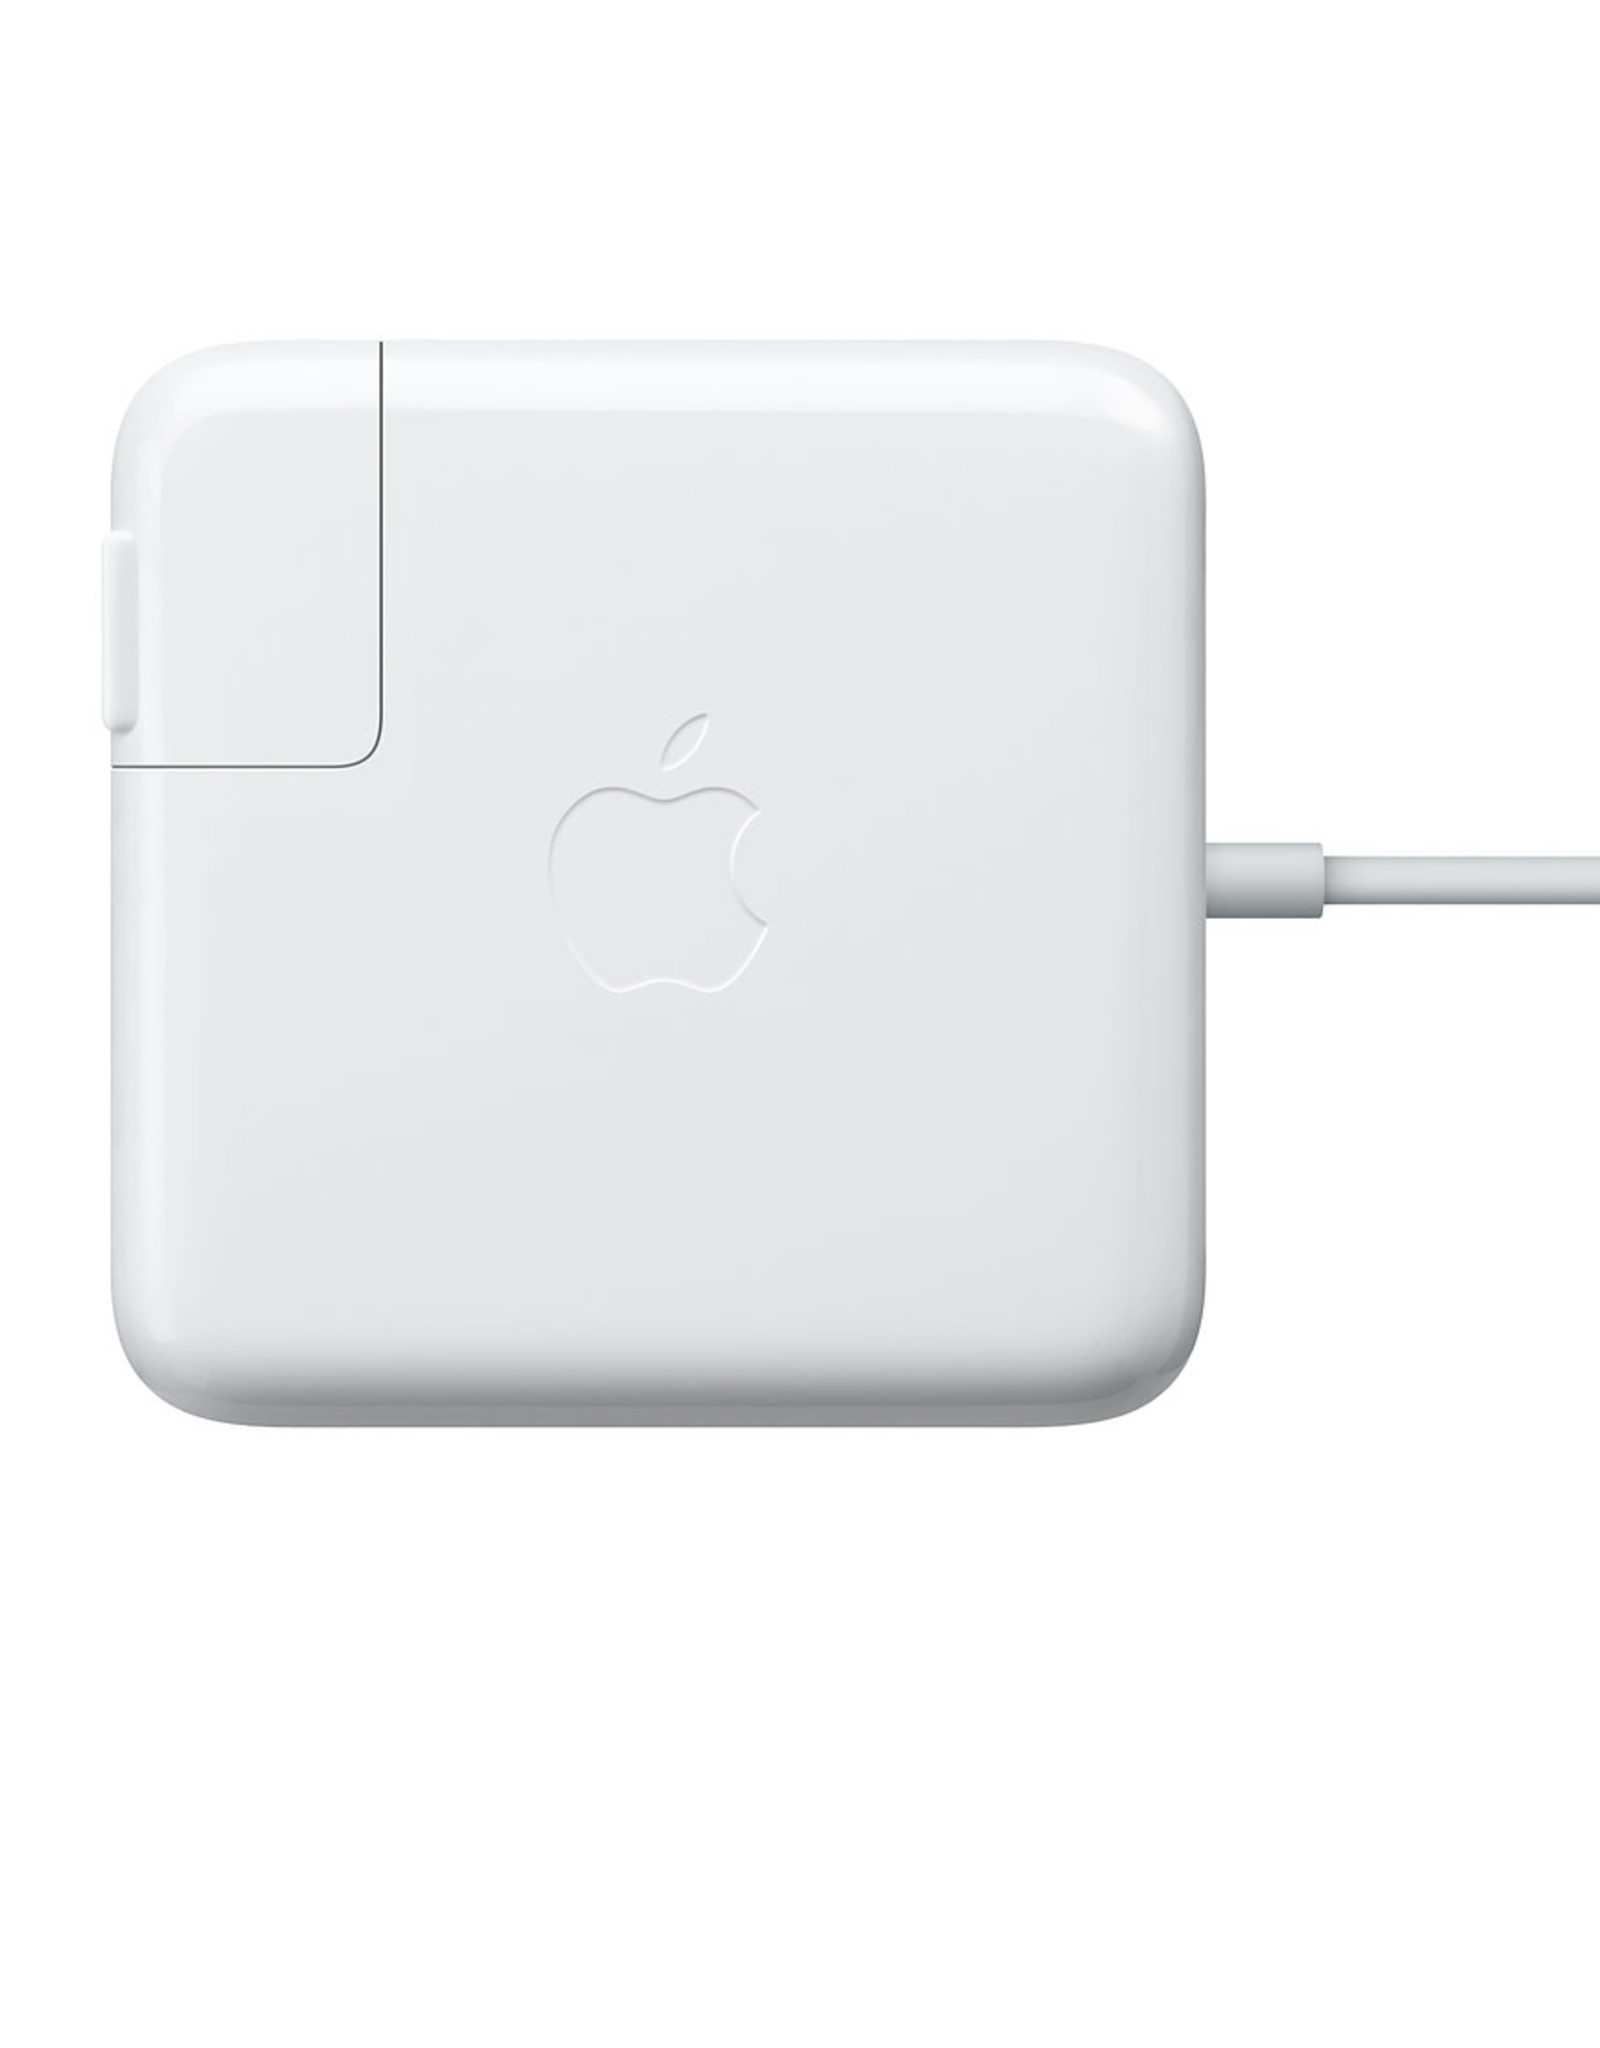 Apple Apple 85W MagSafe Power Adapter (for 15- and 17-inch MacBook Pro)